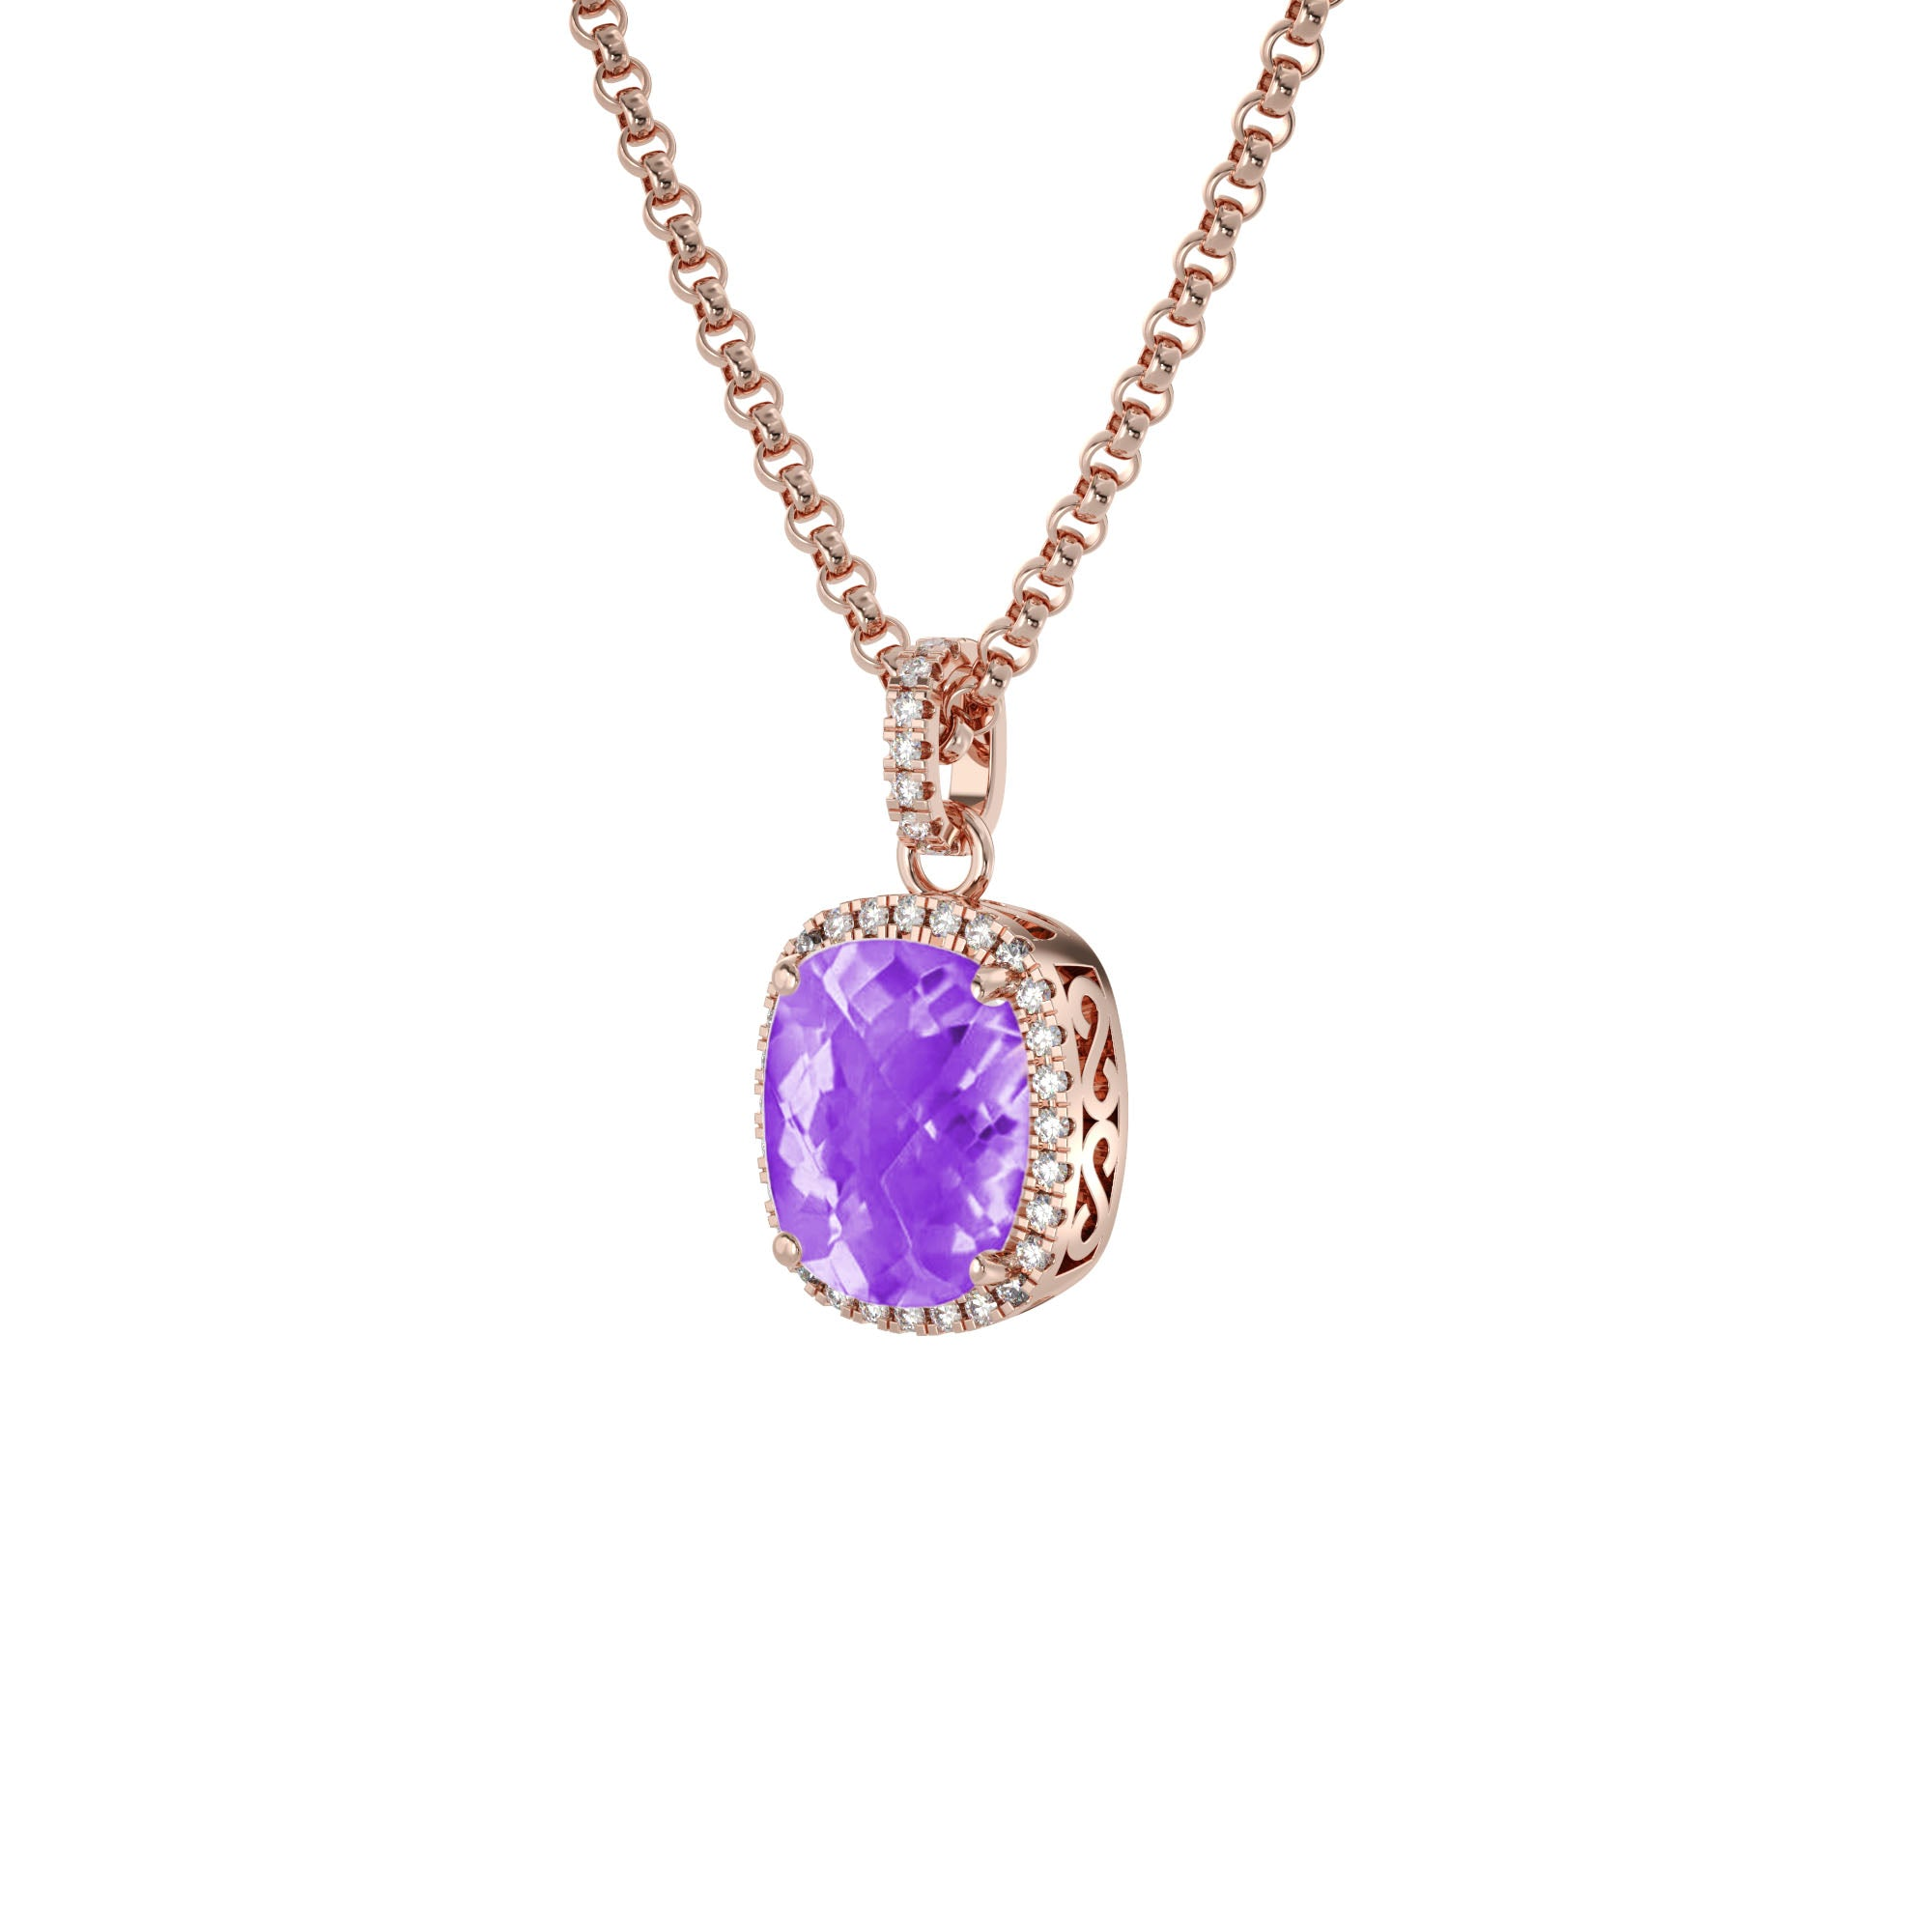 925 Silver Luxe Series Necklace - Laria (Amethyst) - Rose Gold Plated